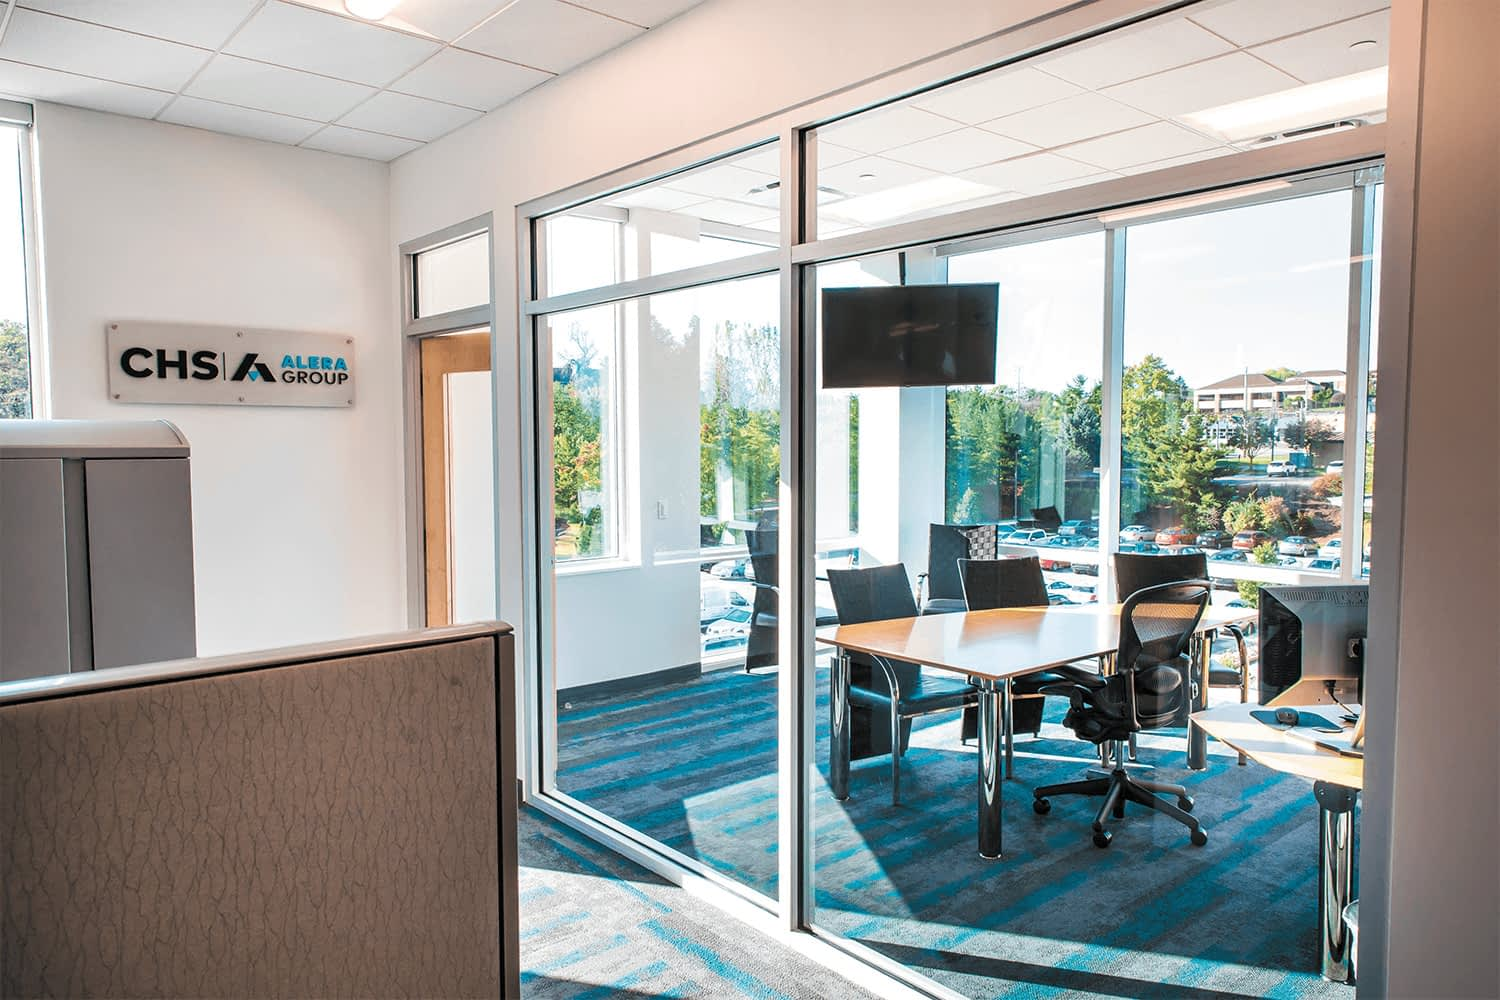 view through a glass wall into a conference room